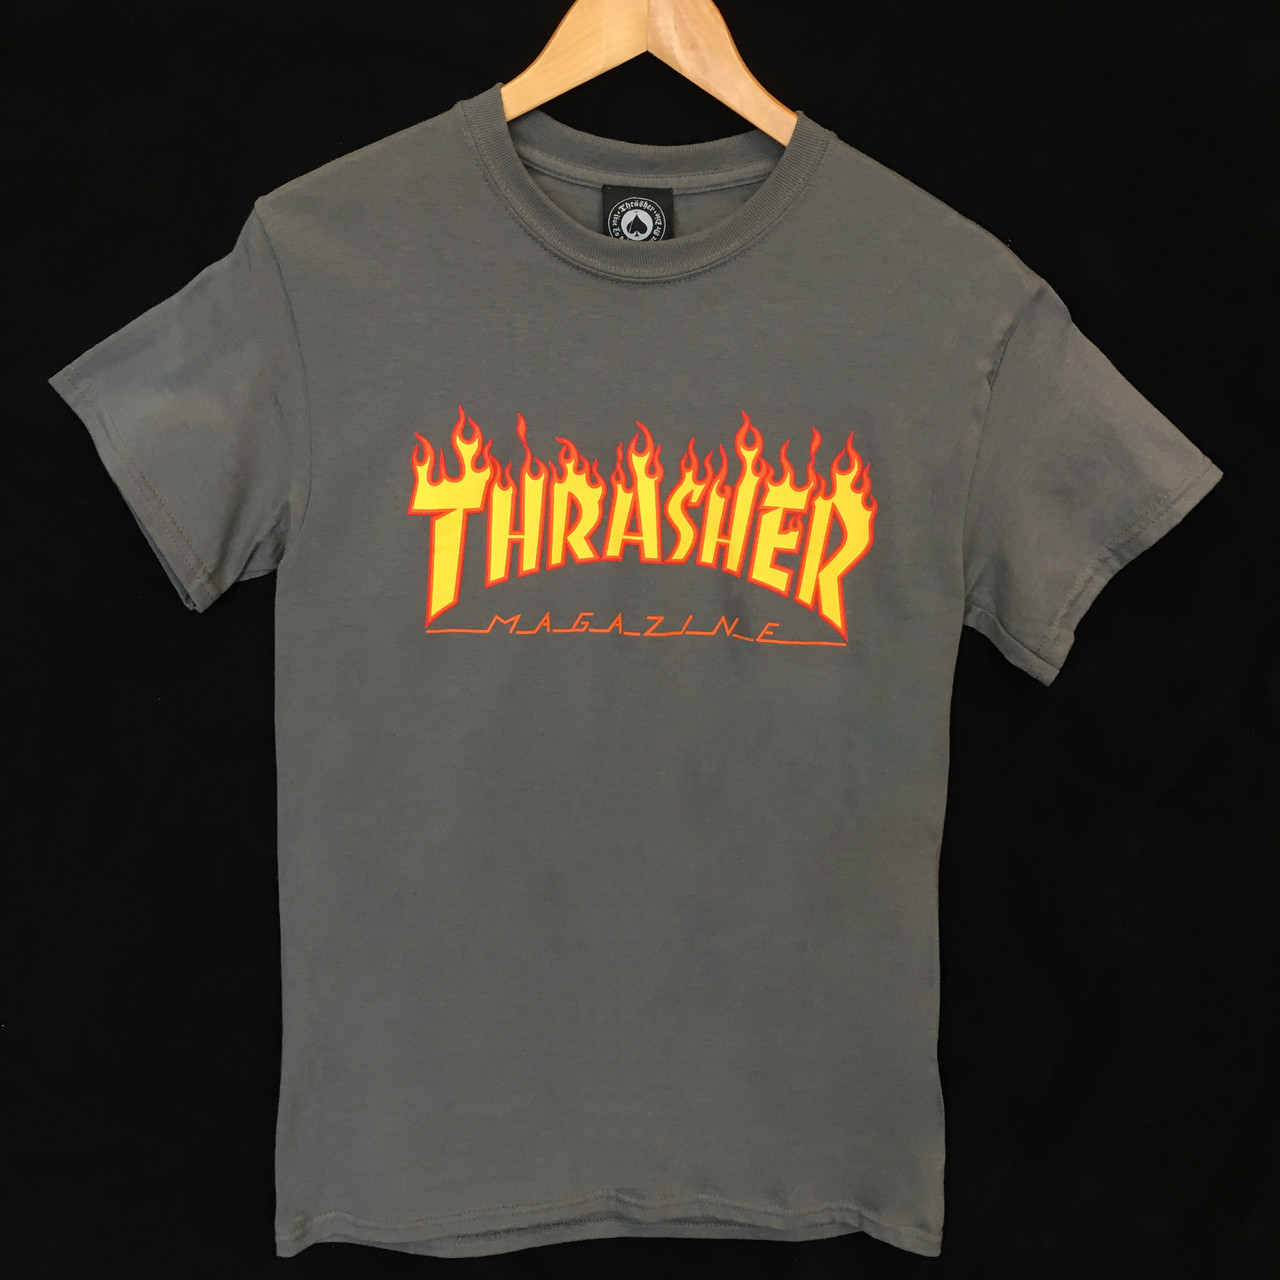 3fd1d02c985d Thrasher T Shirt Flame Logo - Charcoal. Your Price  £24.95 (You save  £5.00). Image 1